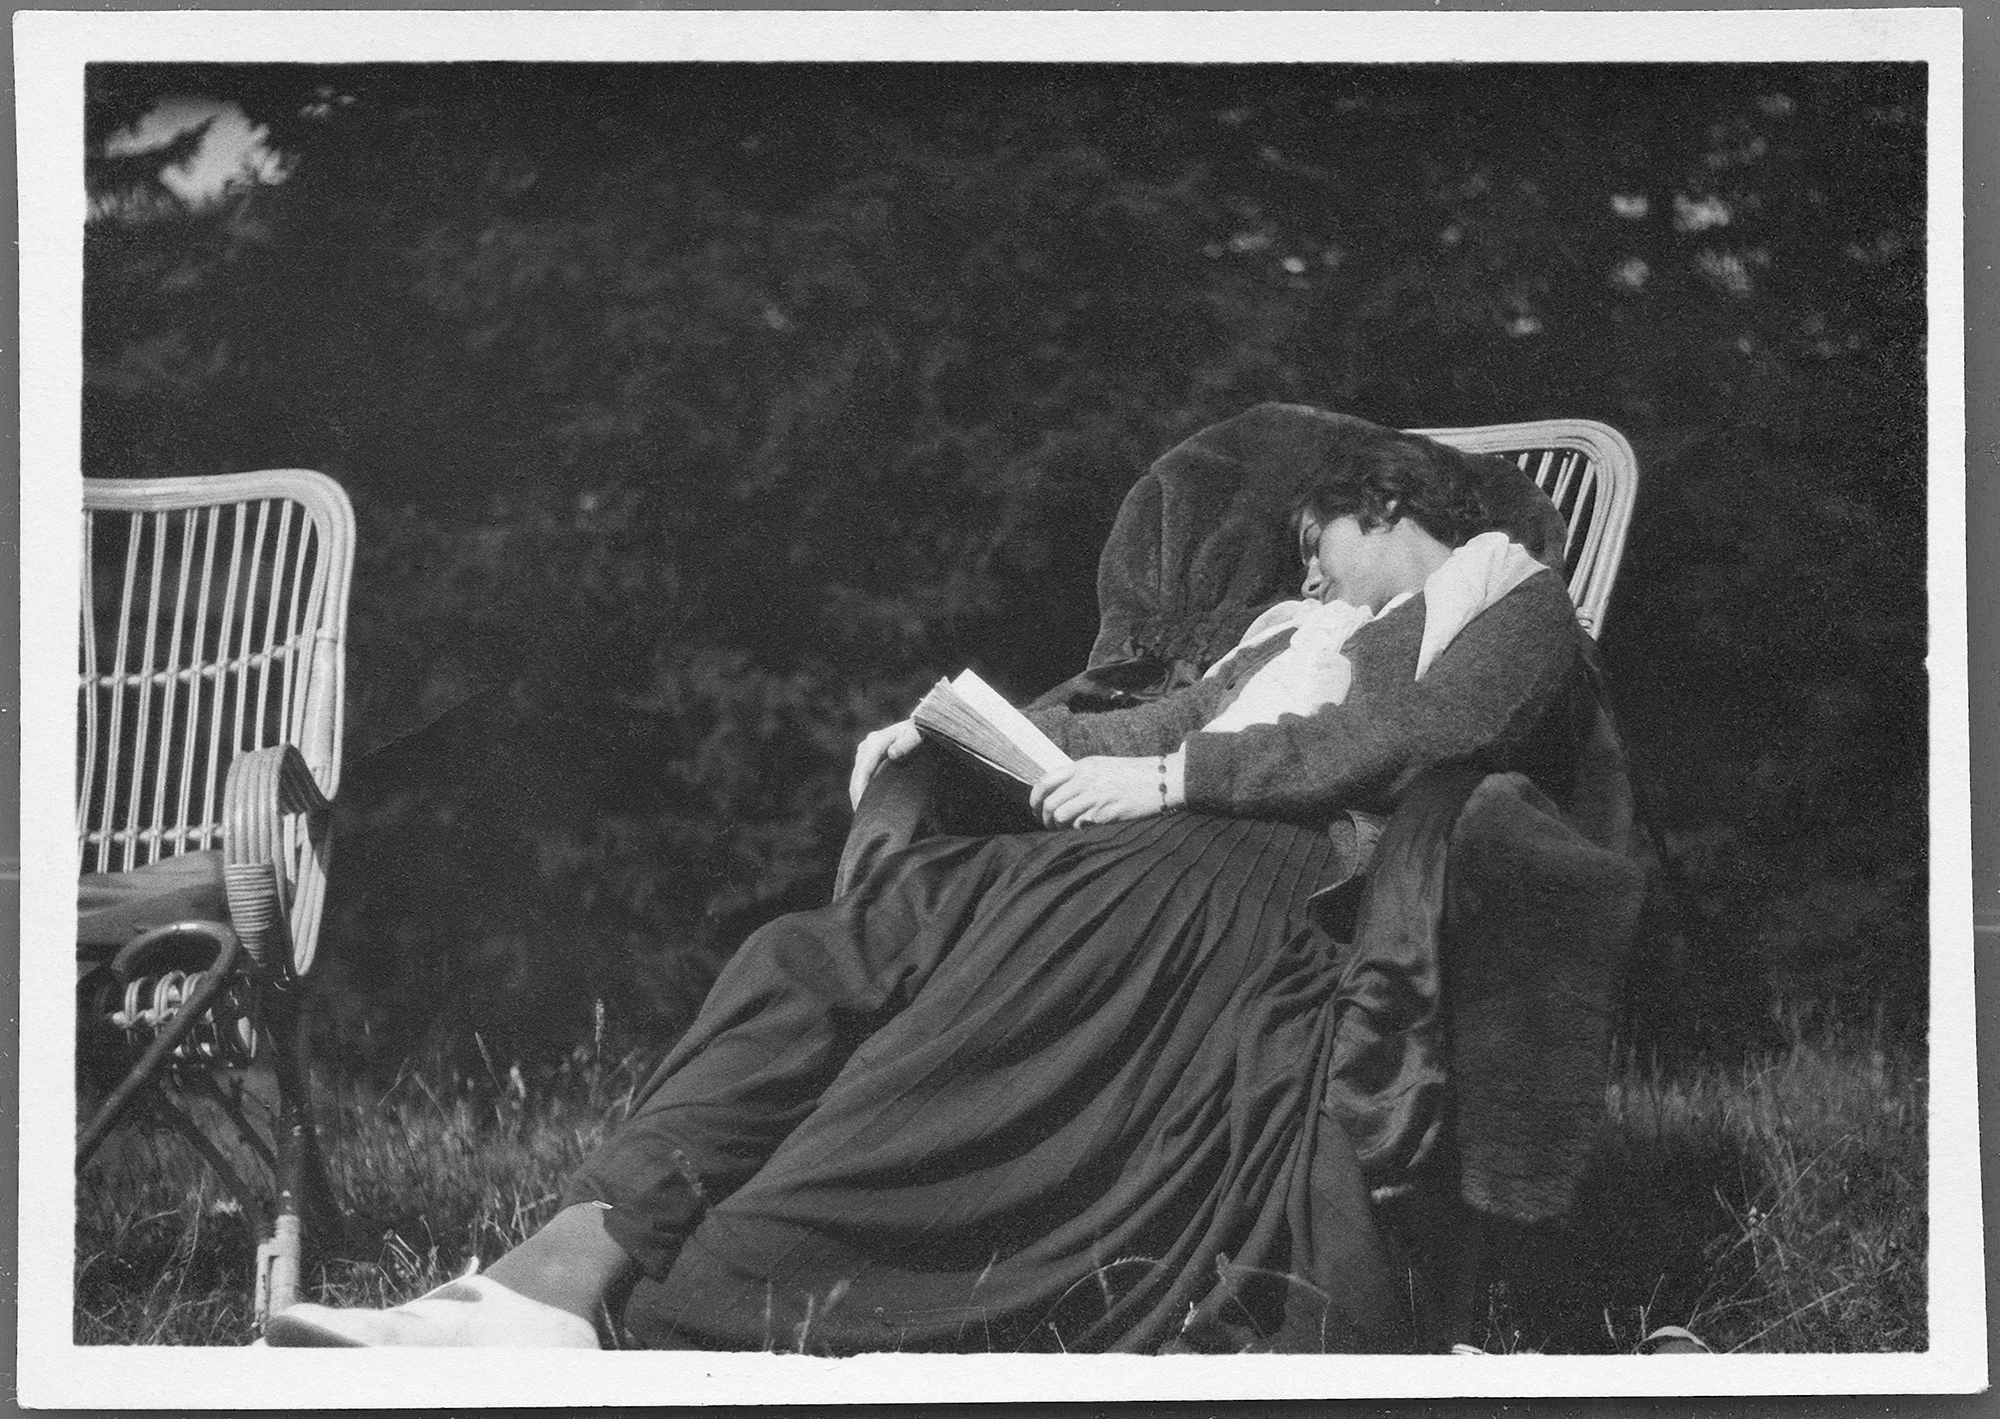 cc_venice_anonymous_gabrielle-chanel-asleep-with-a-book-in-her-hand